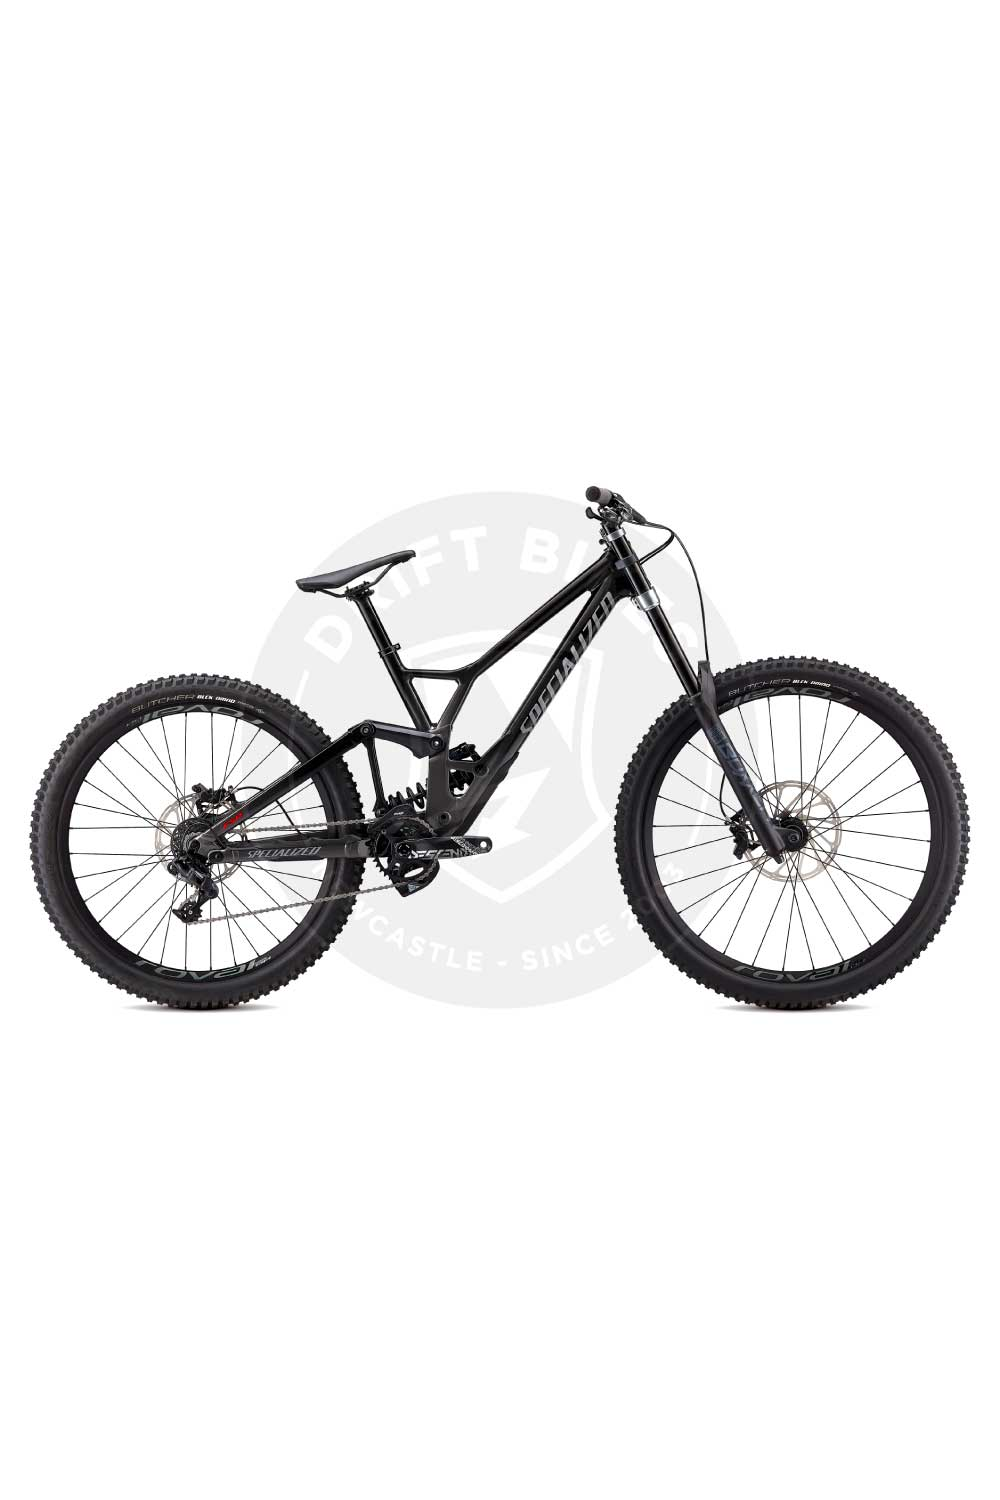 "Specialized 2021 Demo Expert 29"" Downhill Mountain Bike"